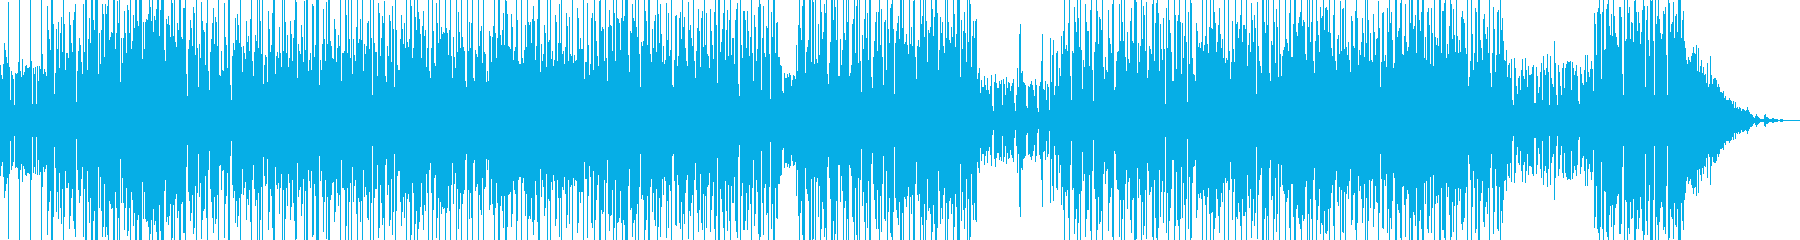 Chinese Trip, Chinese Hip Pop D's reproduced waveform